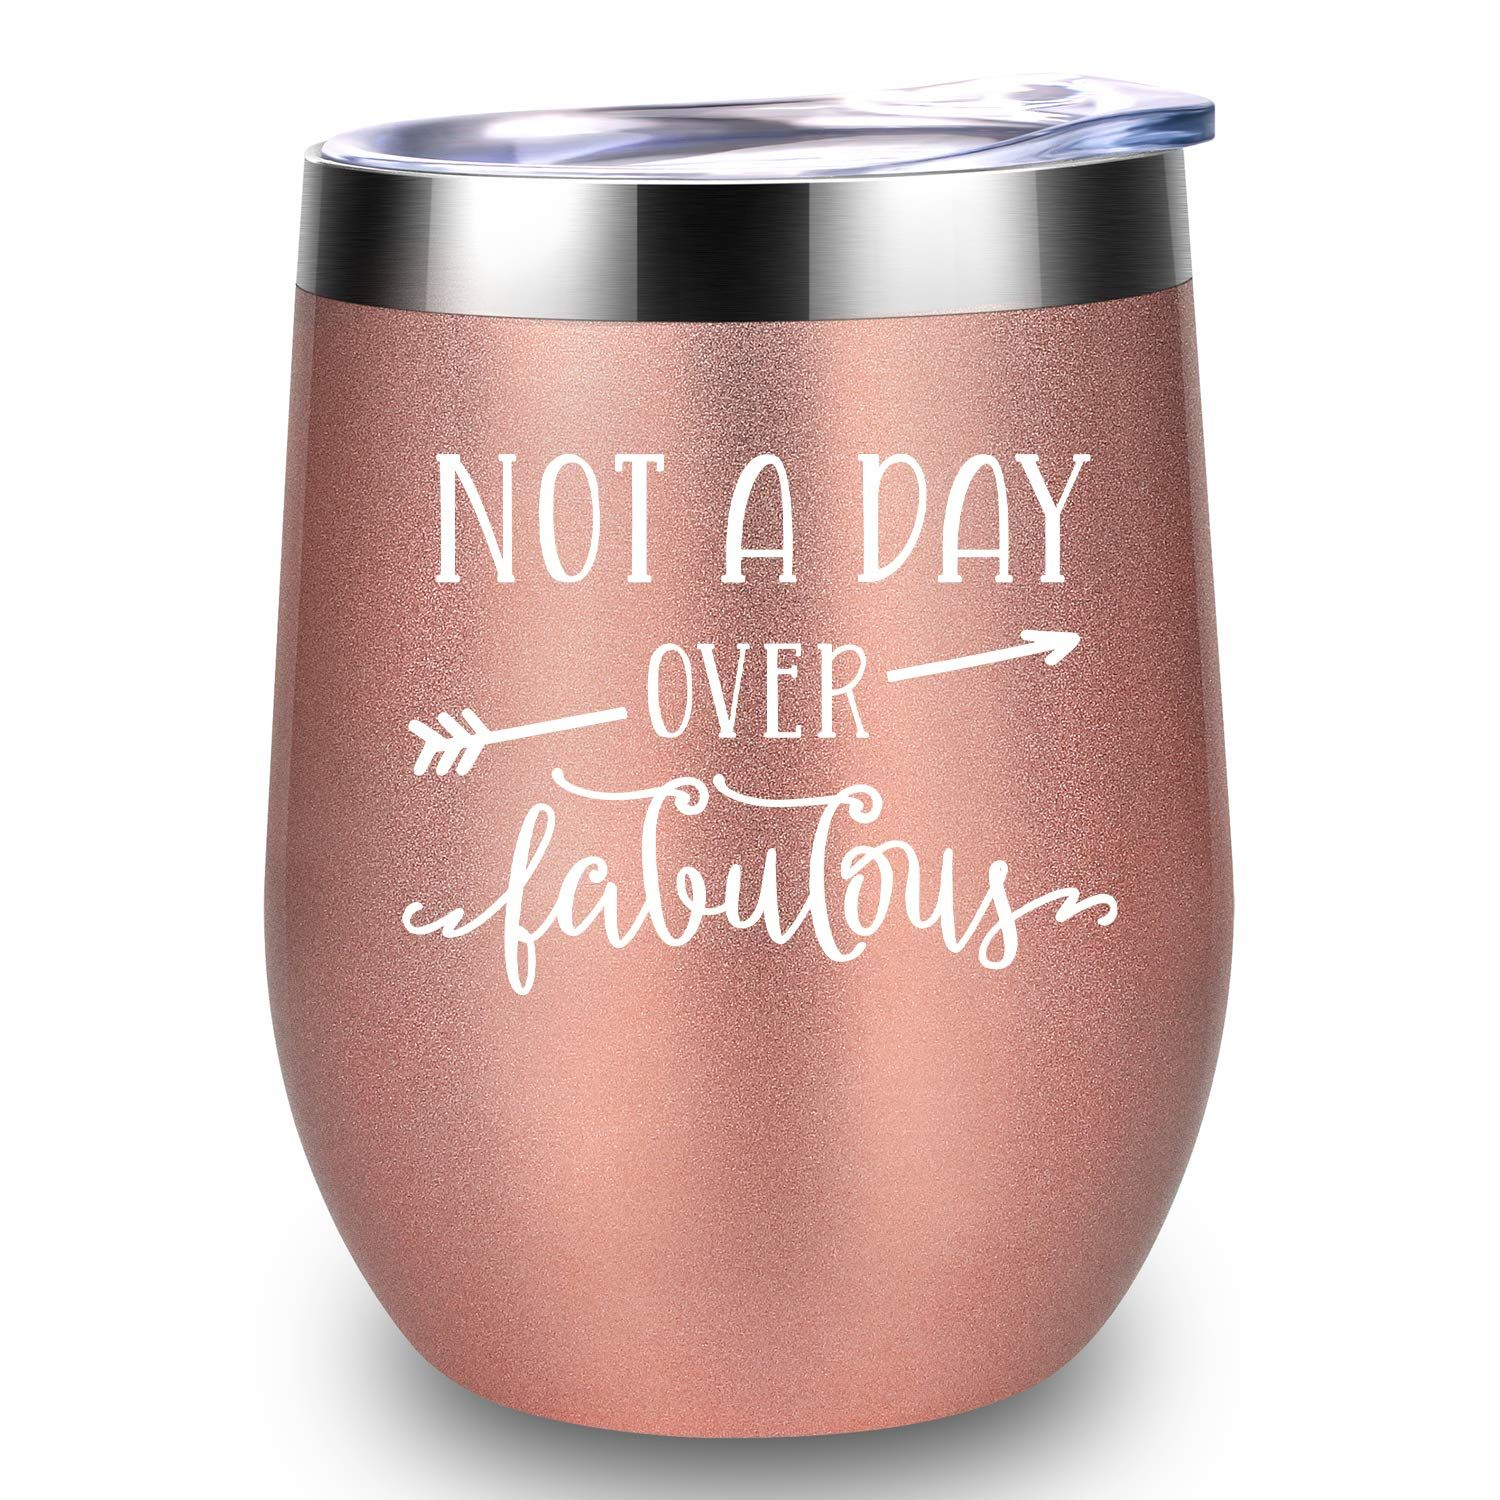 a3f200aa801 Amazon.com: Not A Day Over Fabulous - LEADO 12 oz Stainless Steel Wine  Tumbler Insulated Novelty Cup with Lid and Straw, Funny Birthday, Mothers  Day, ...